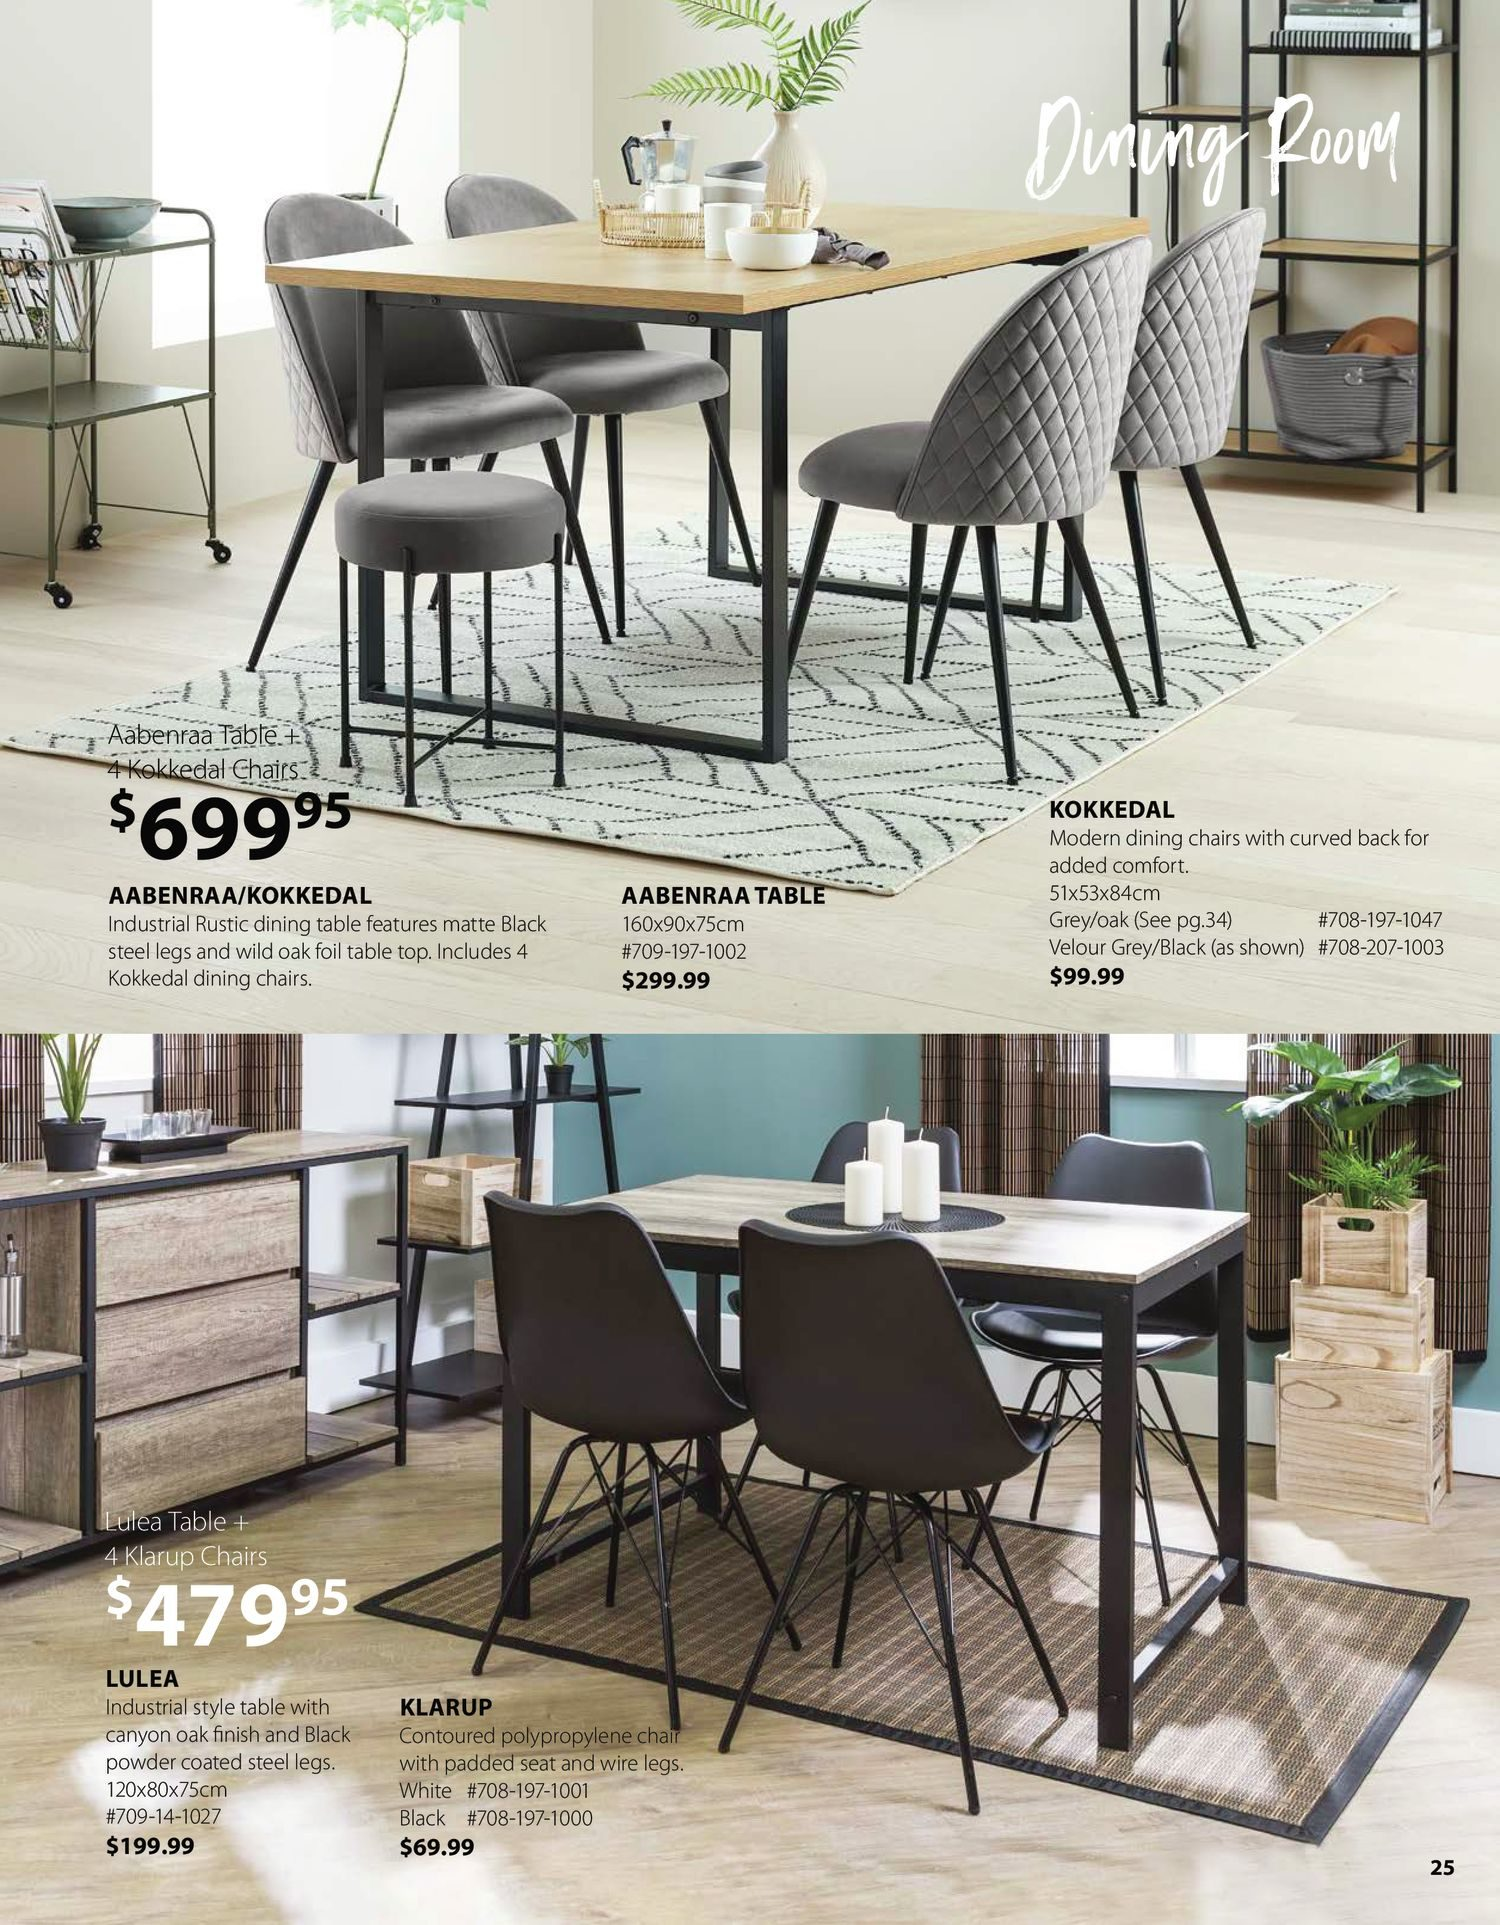 Jysk - Furniture Catalogue - Be Inspired - Page 25